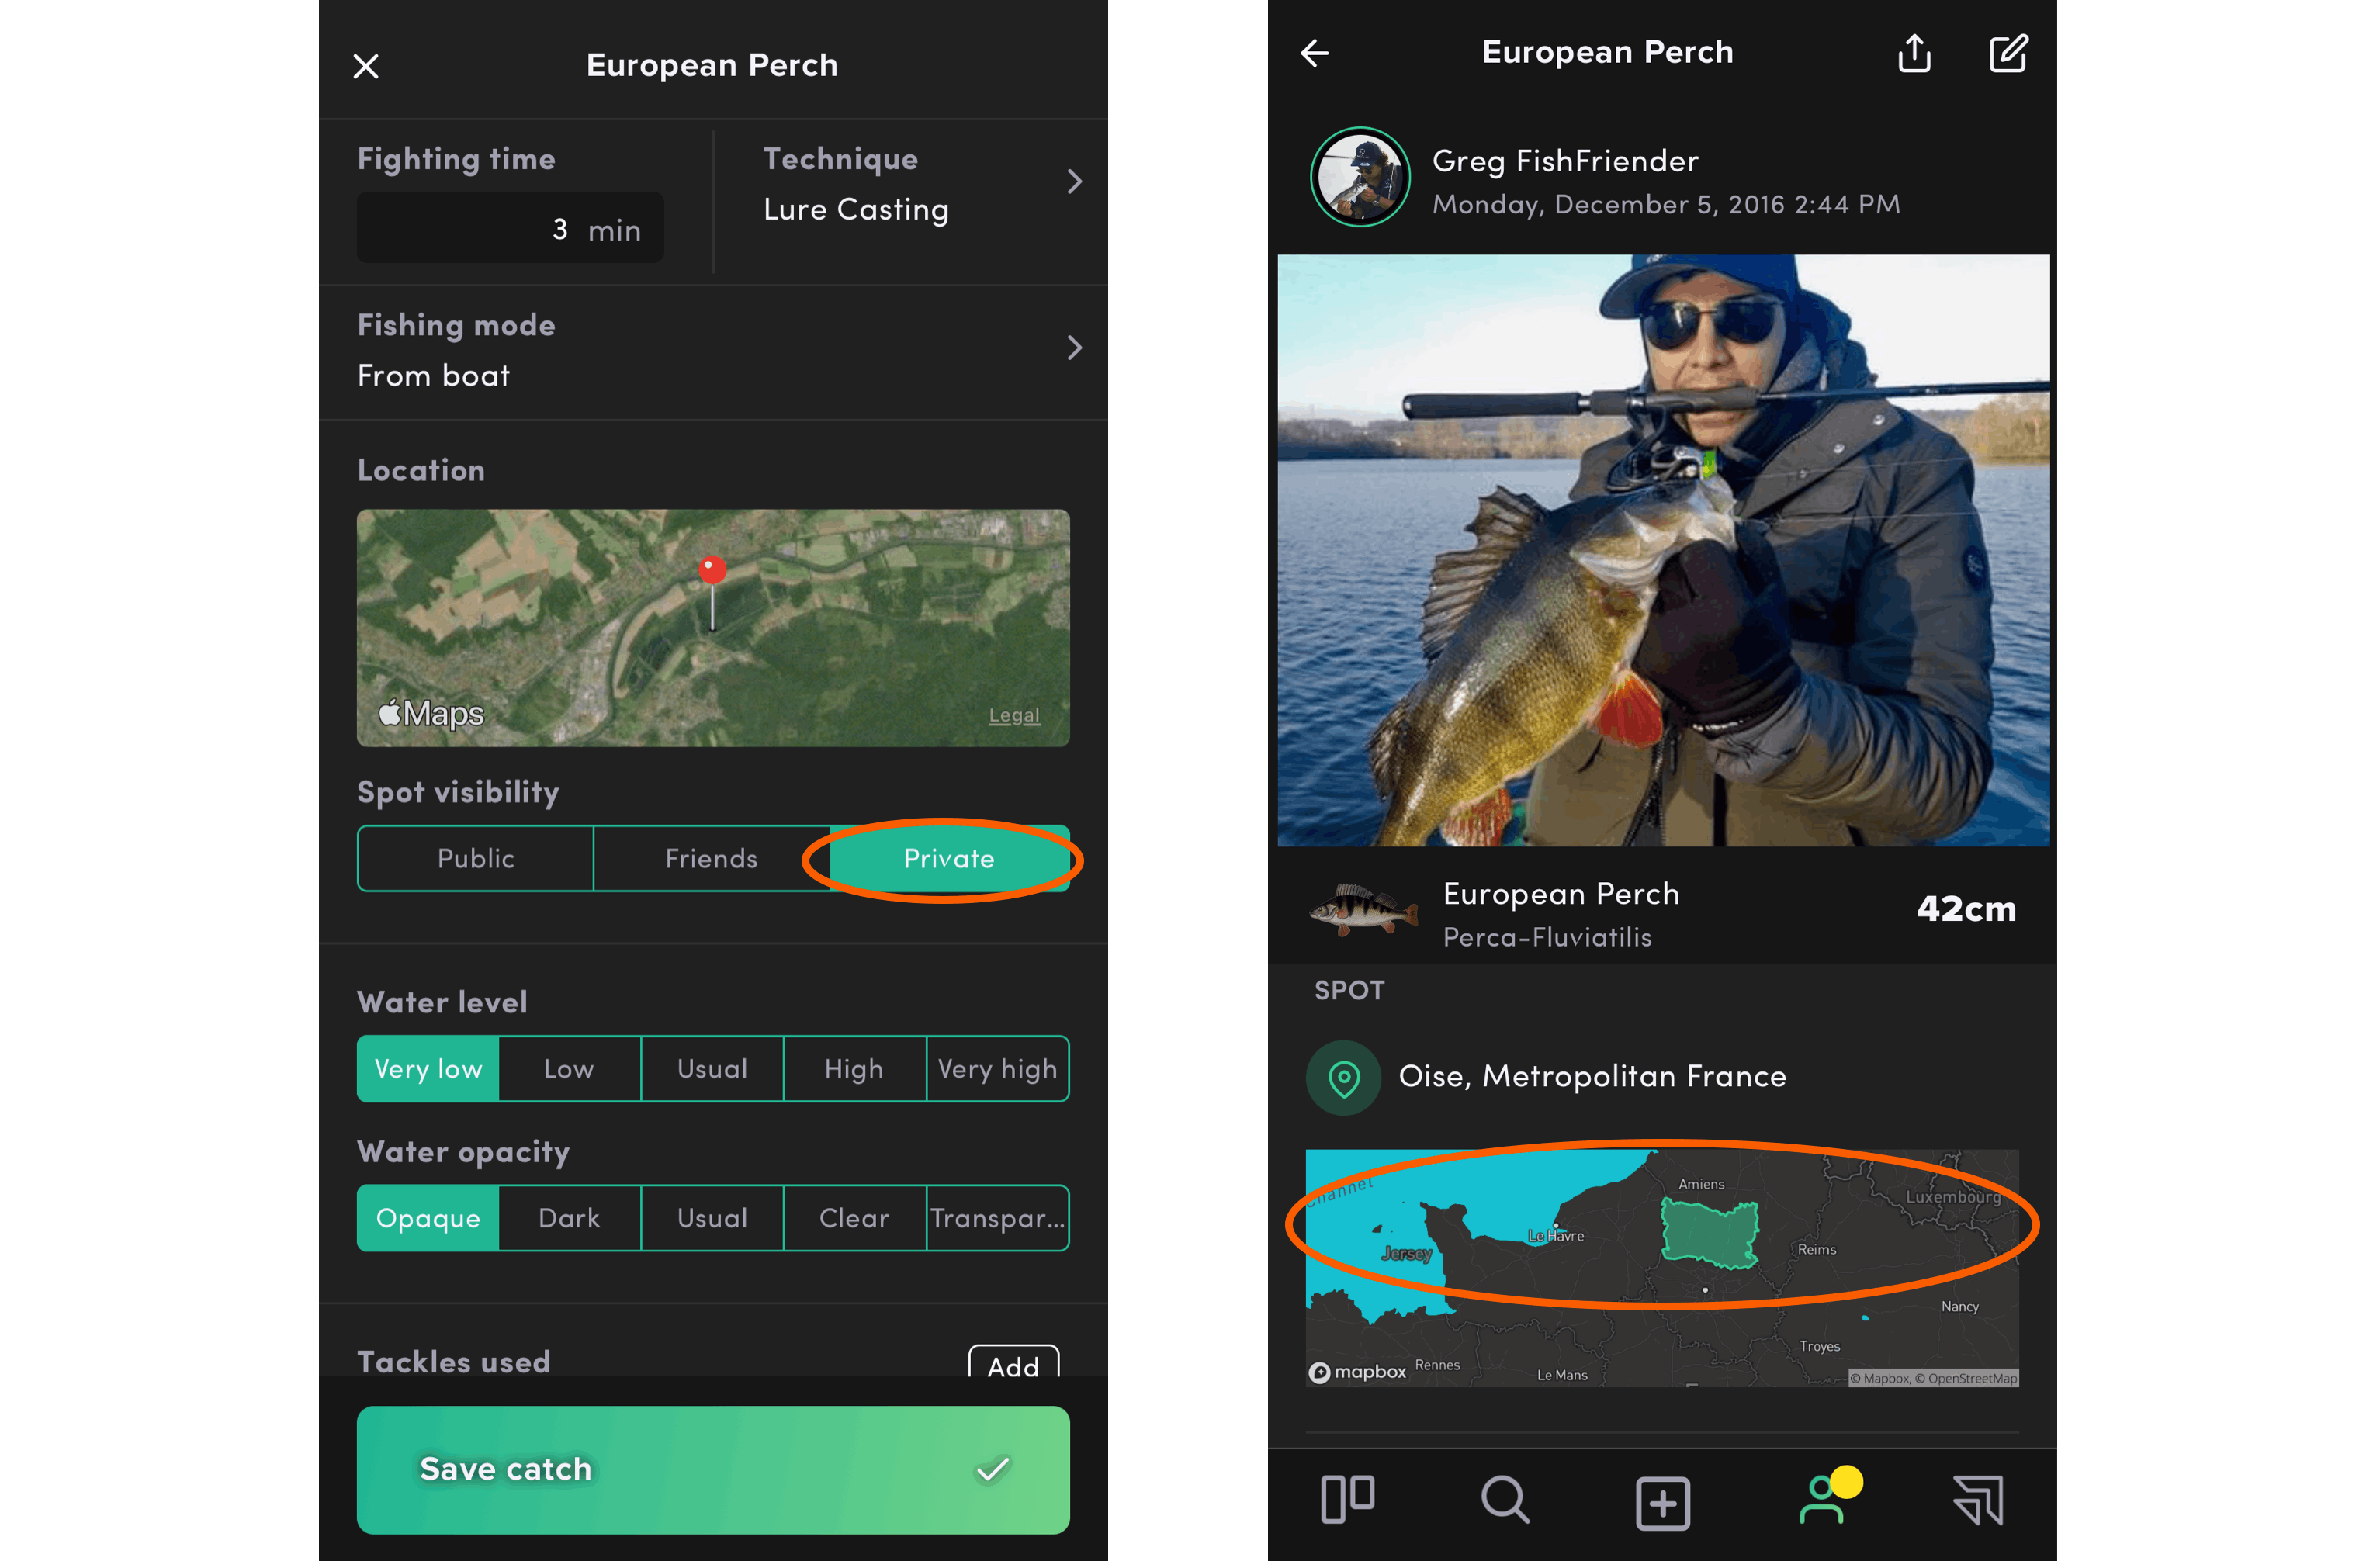 Your spot being private by default, other users will only see the department as in the visual above